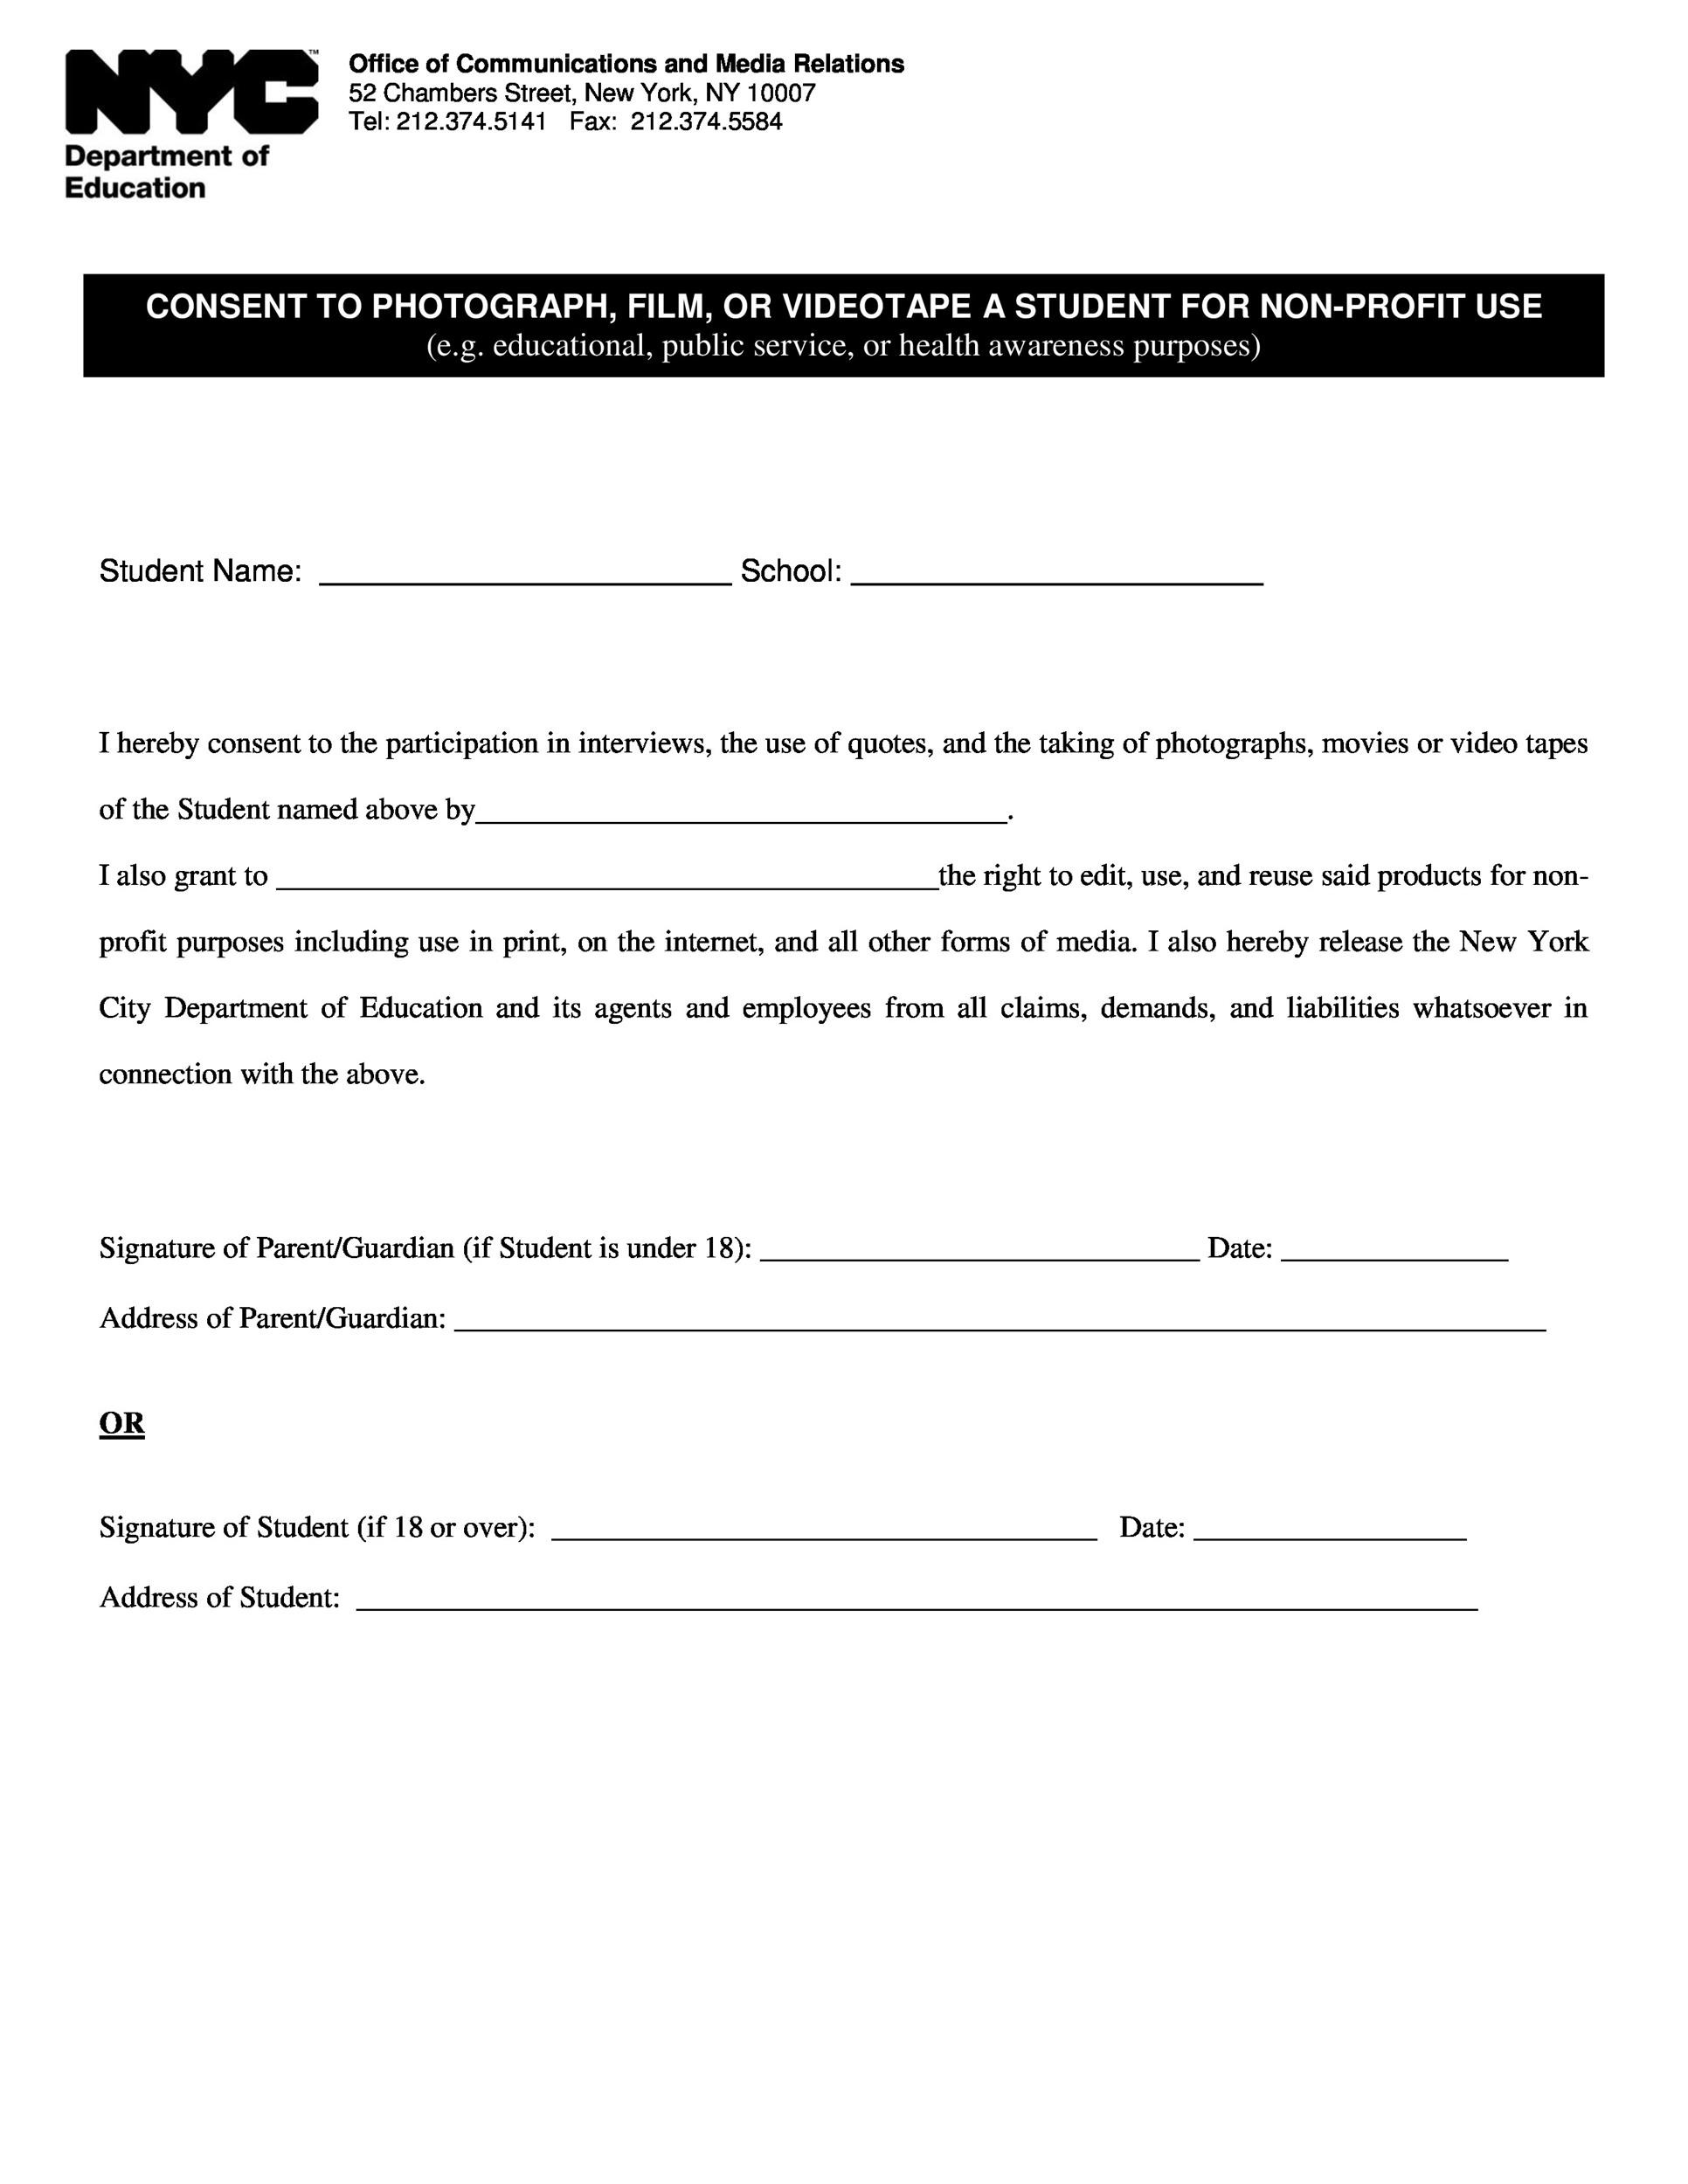 Copyright Release form Template